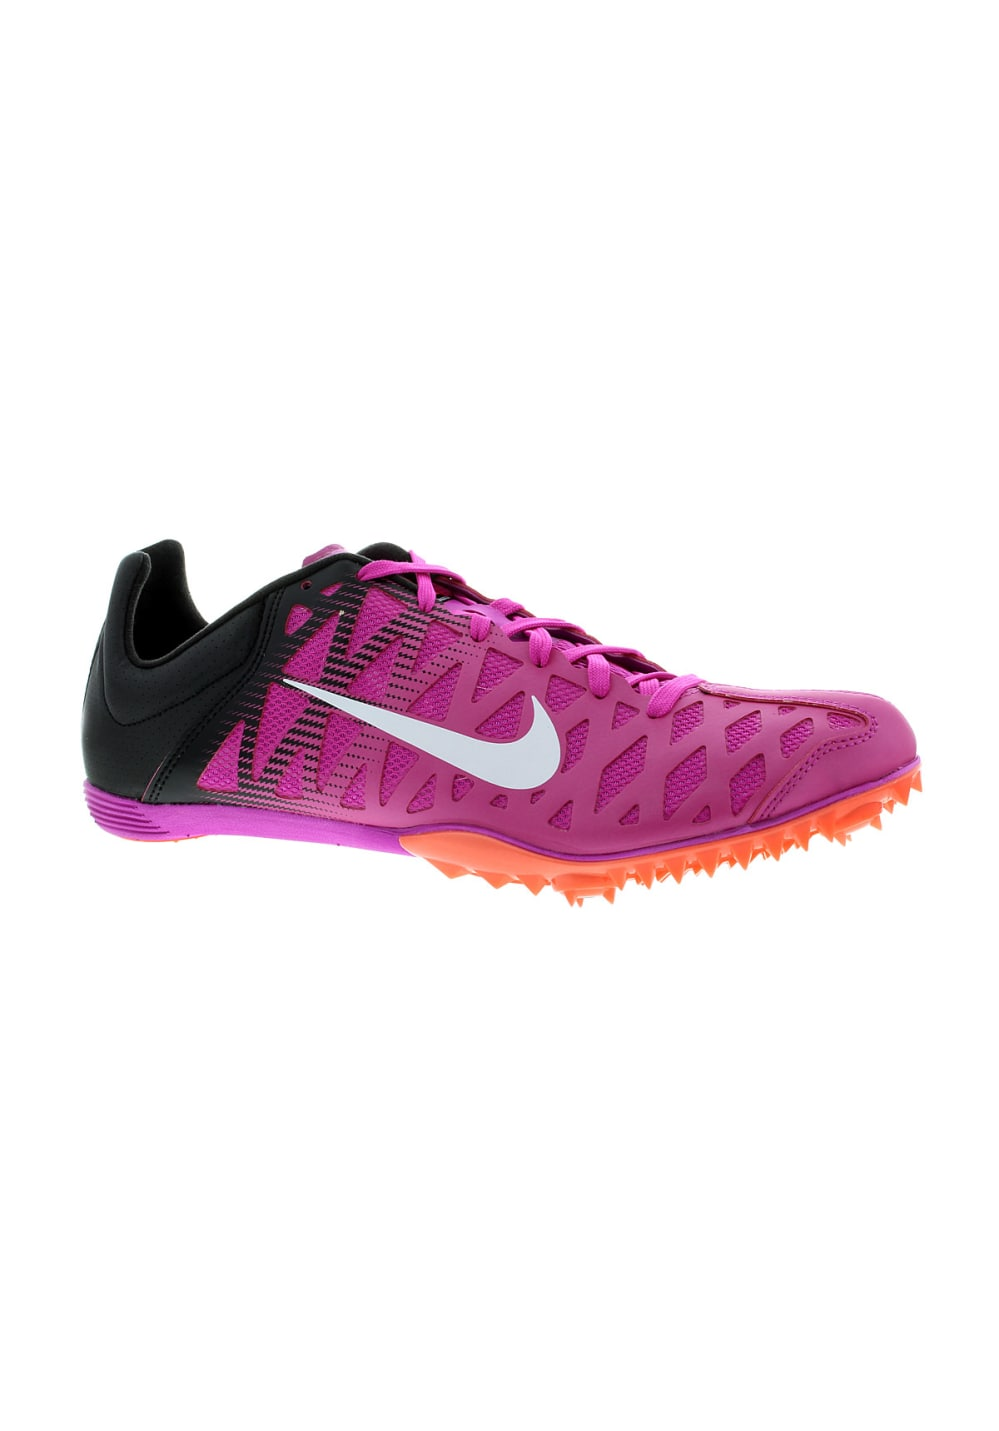 4 Pointes Maxcat Chaussures Violet Zoom Nike htQdsr